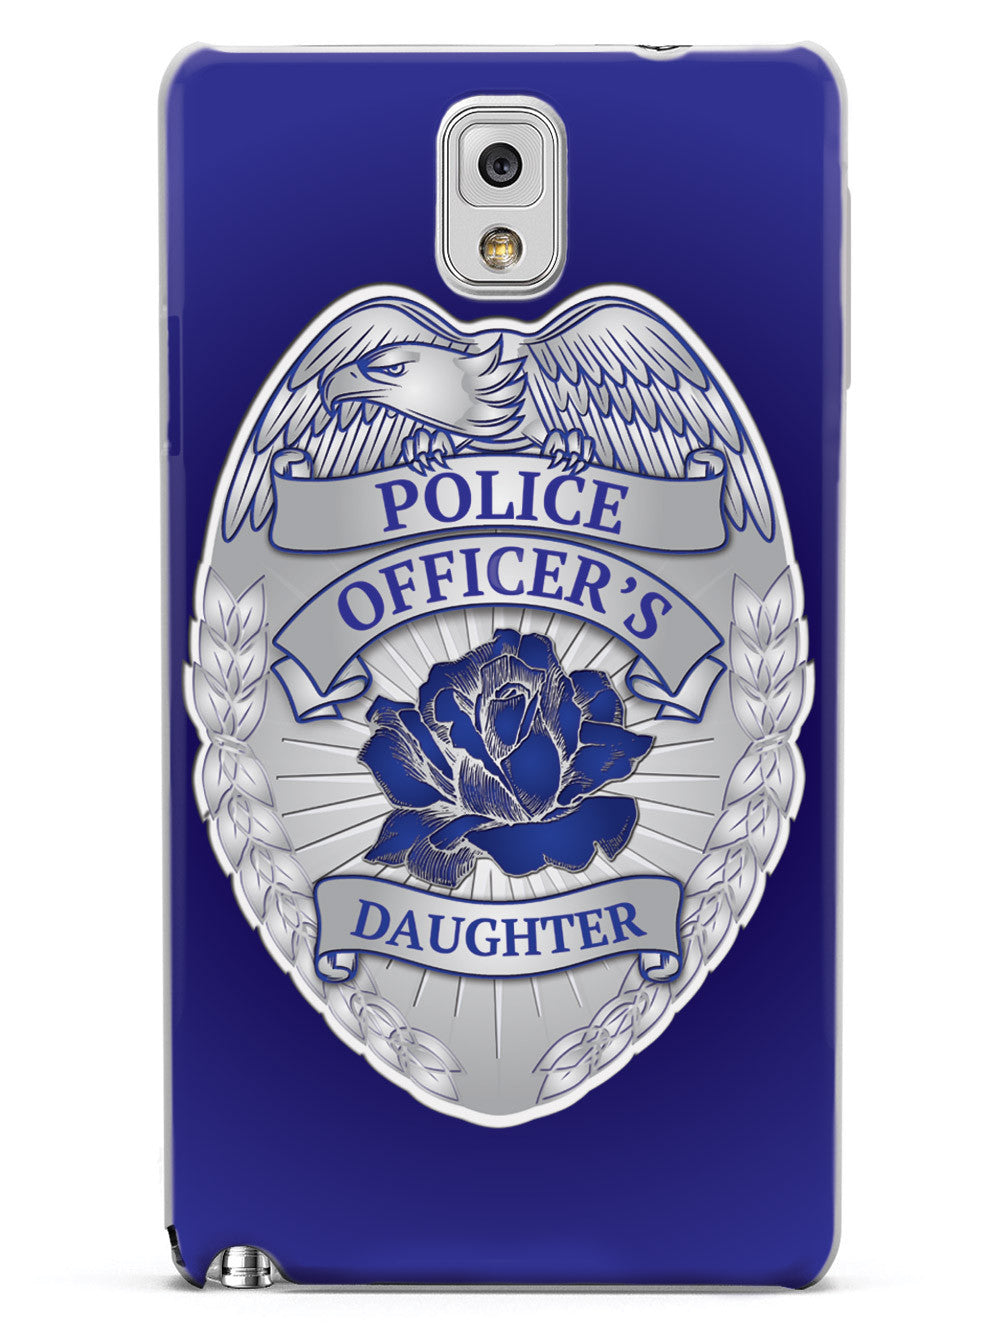 police officer u0027s daughter badge case u2013 inspiredcases